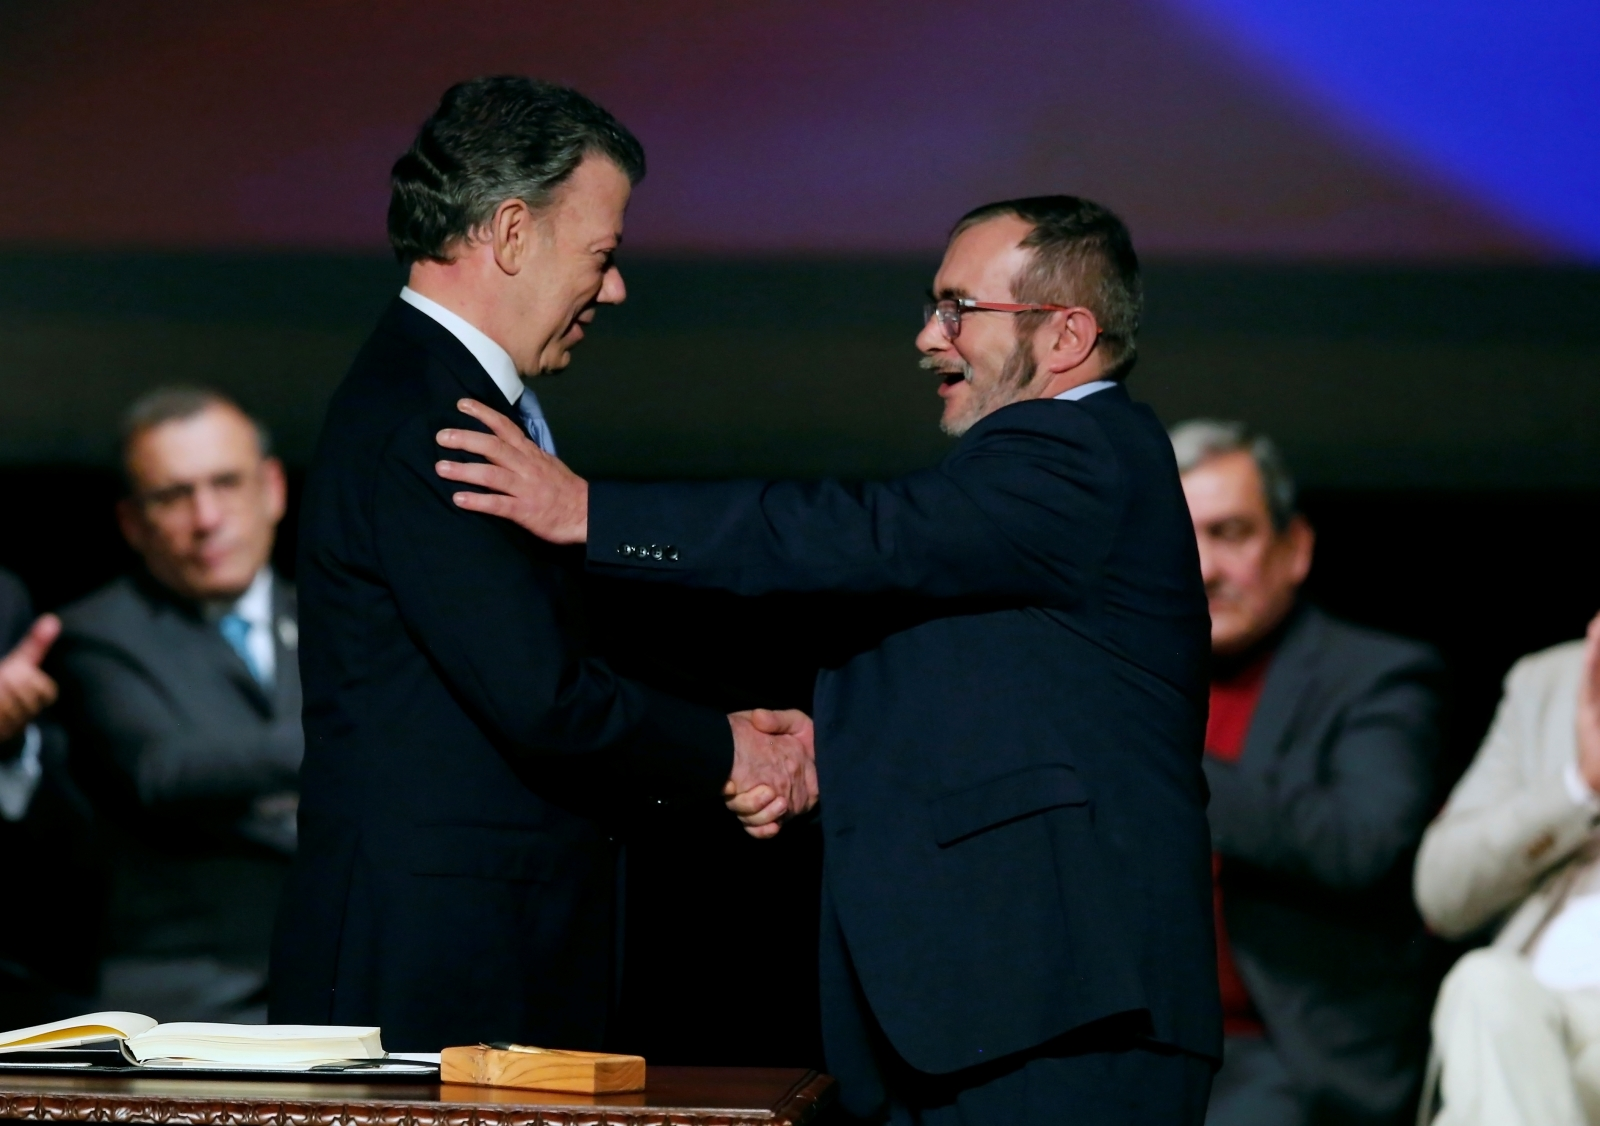 Colombia Farc peace deal